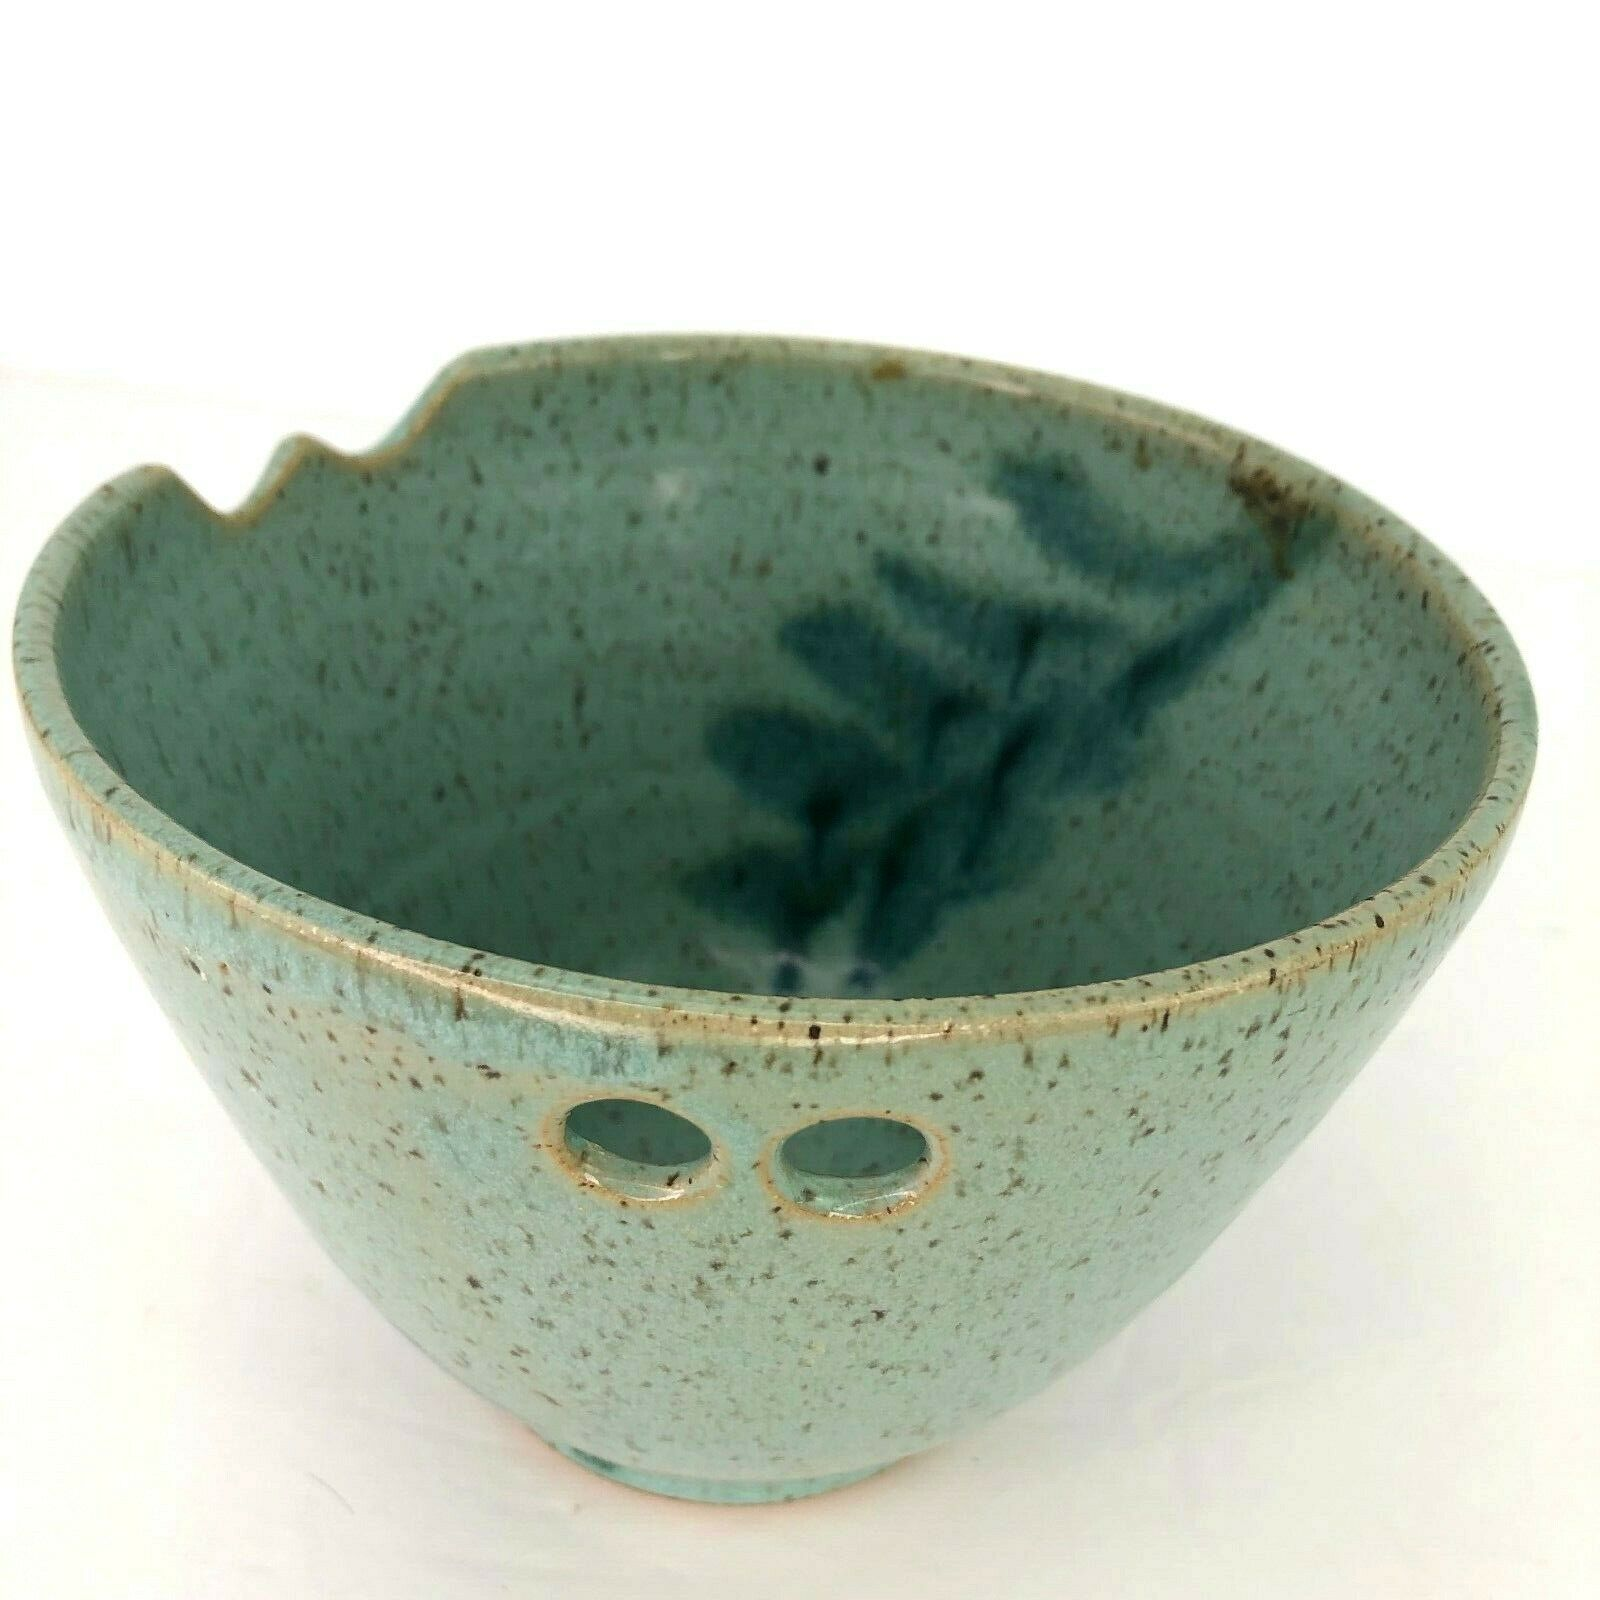 Primary image for Kuoz Pottery Yarn Bowl Knitting Crocheting Ceramic Drip Glaze Blue Fired Craft